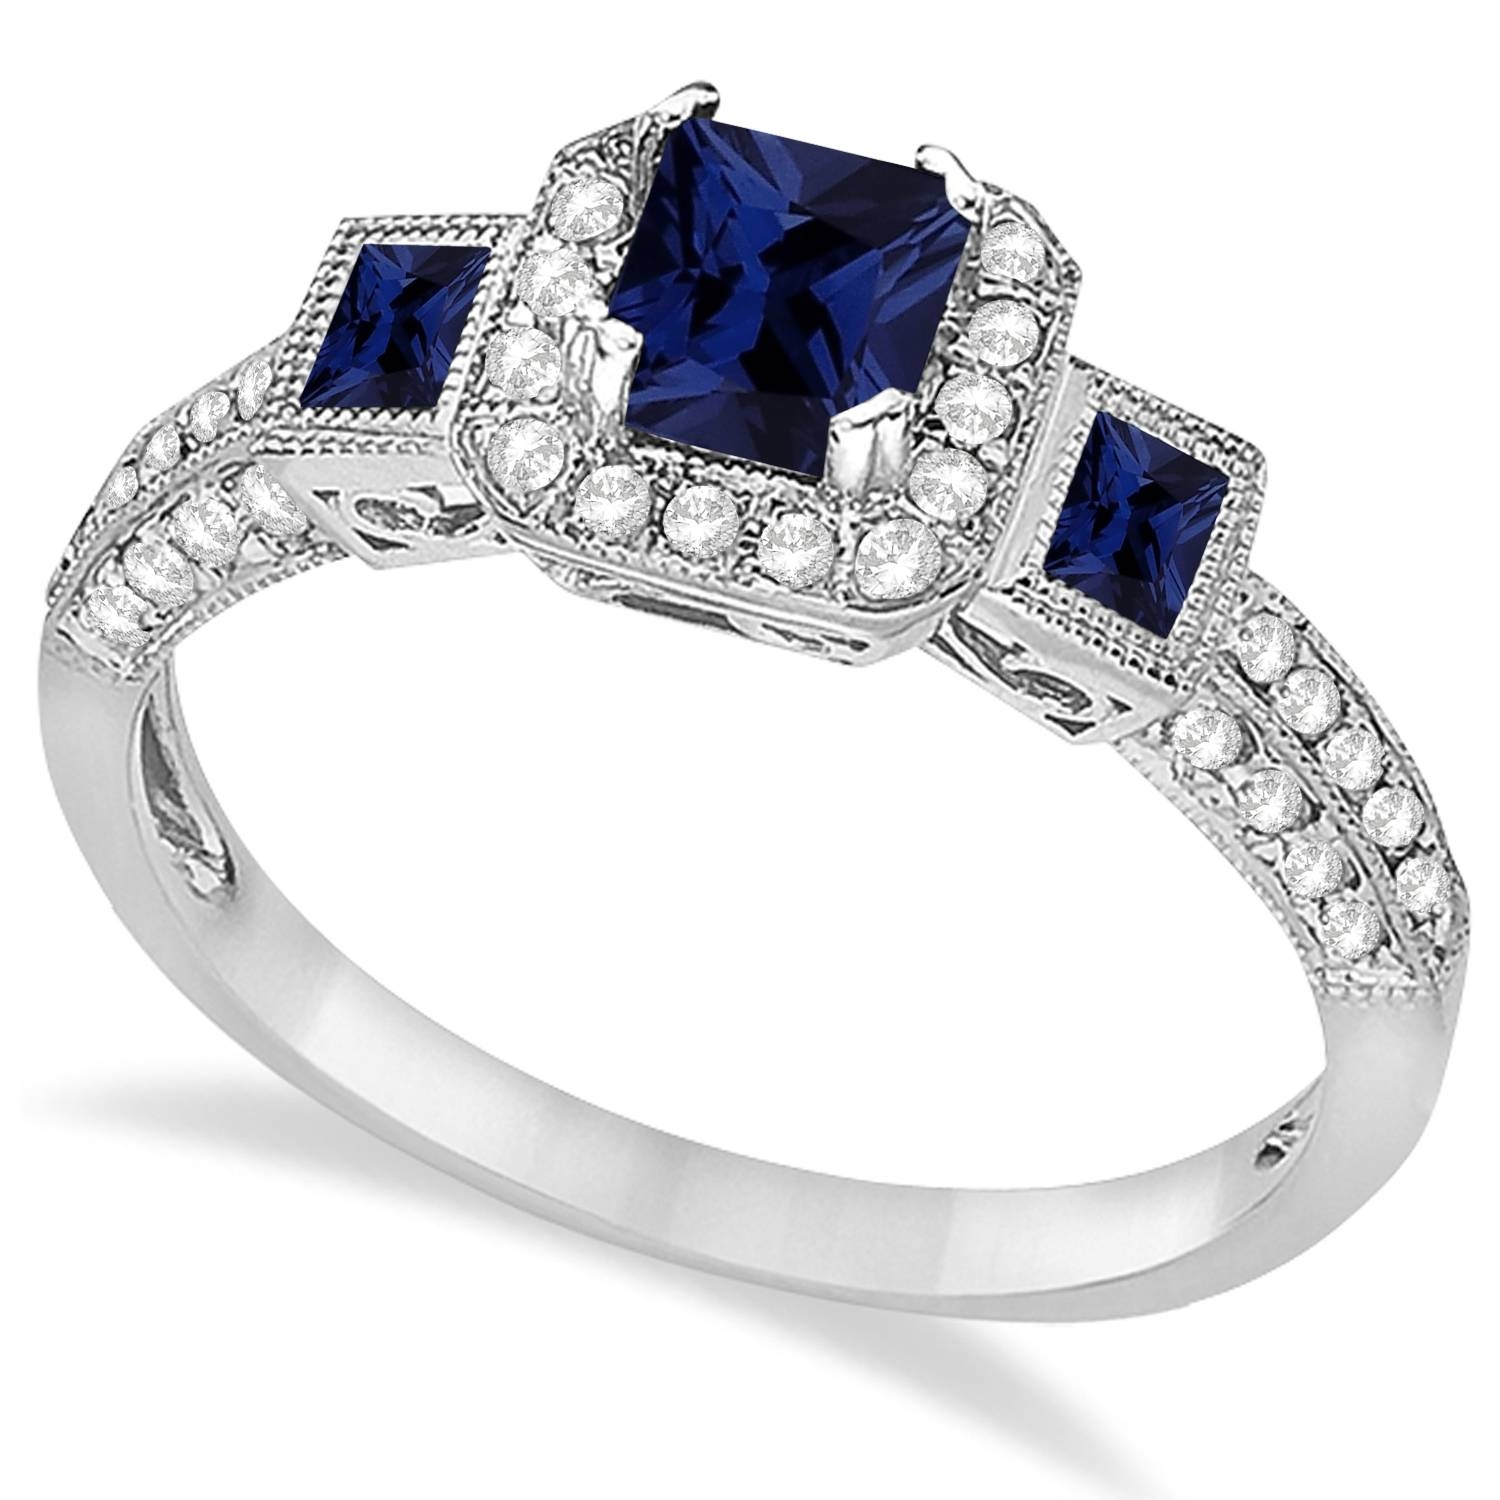 Blue Sapphire & Diamond Engagement Ring 14K White Gold  (View 3 of 15)